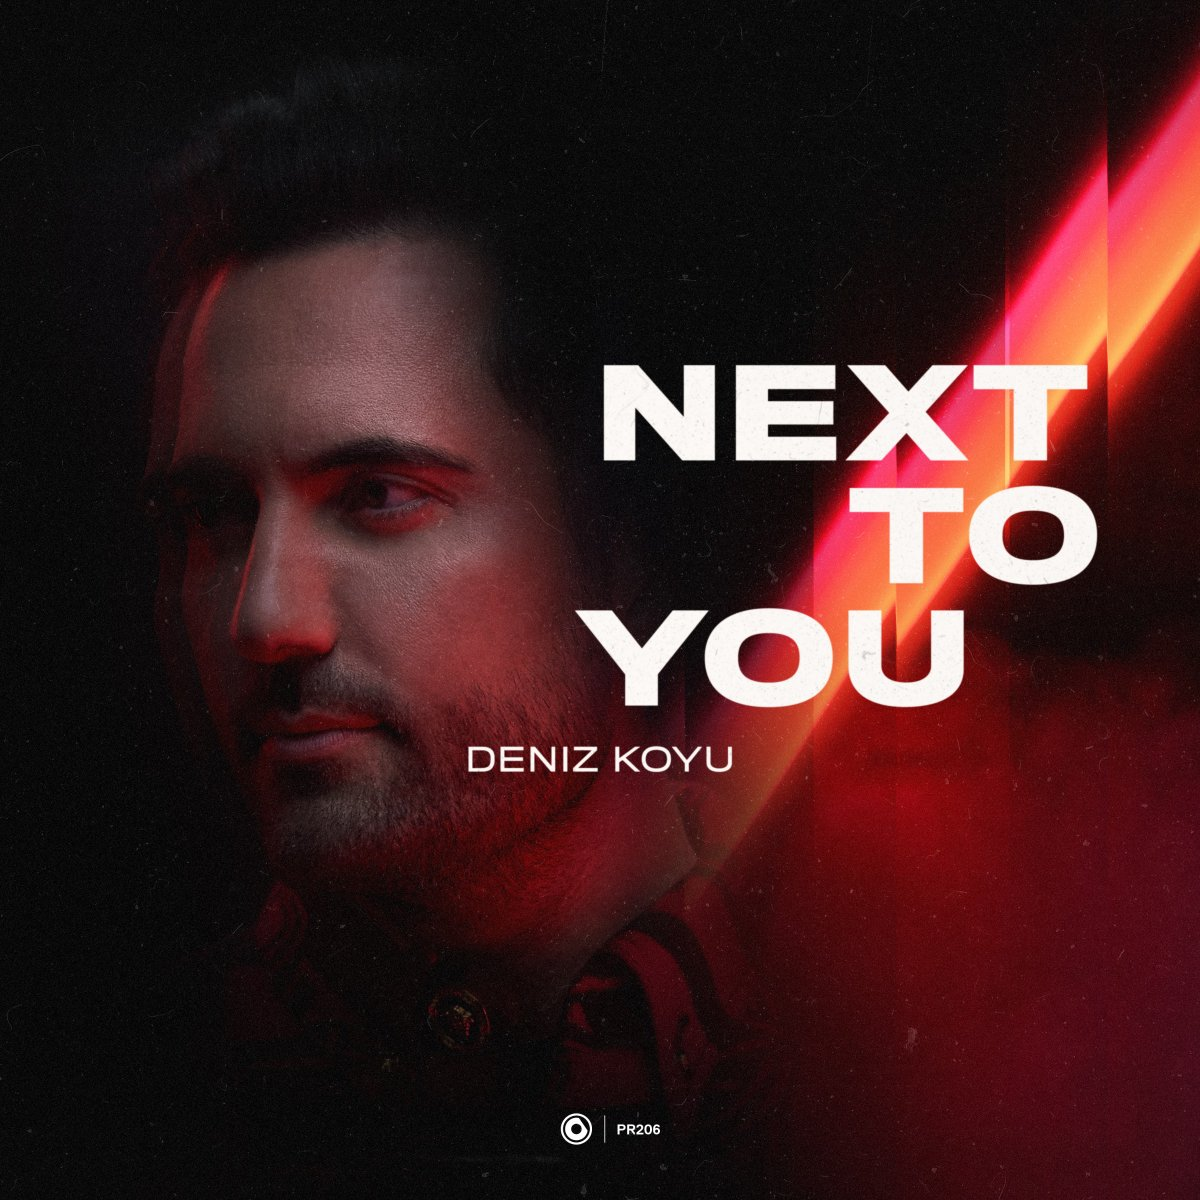 """Sing along with summer anthem """"Next To You"""" by the legend @denizkoyumusic! ☀️ OUT NOW on Protocol Recordings! 👉 Listen here: https://t.co/RD4ObyP8Aw https://t.co/eokyCwDQMk"""